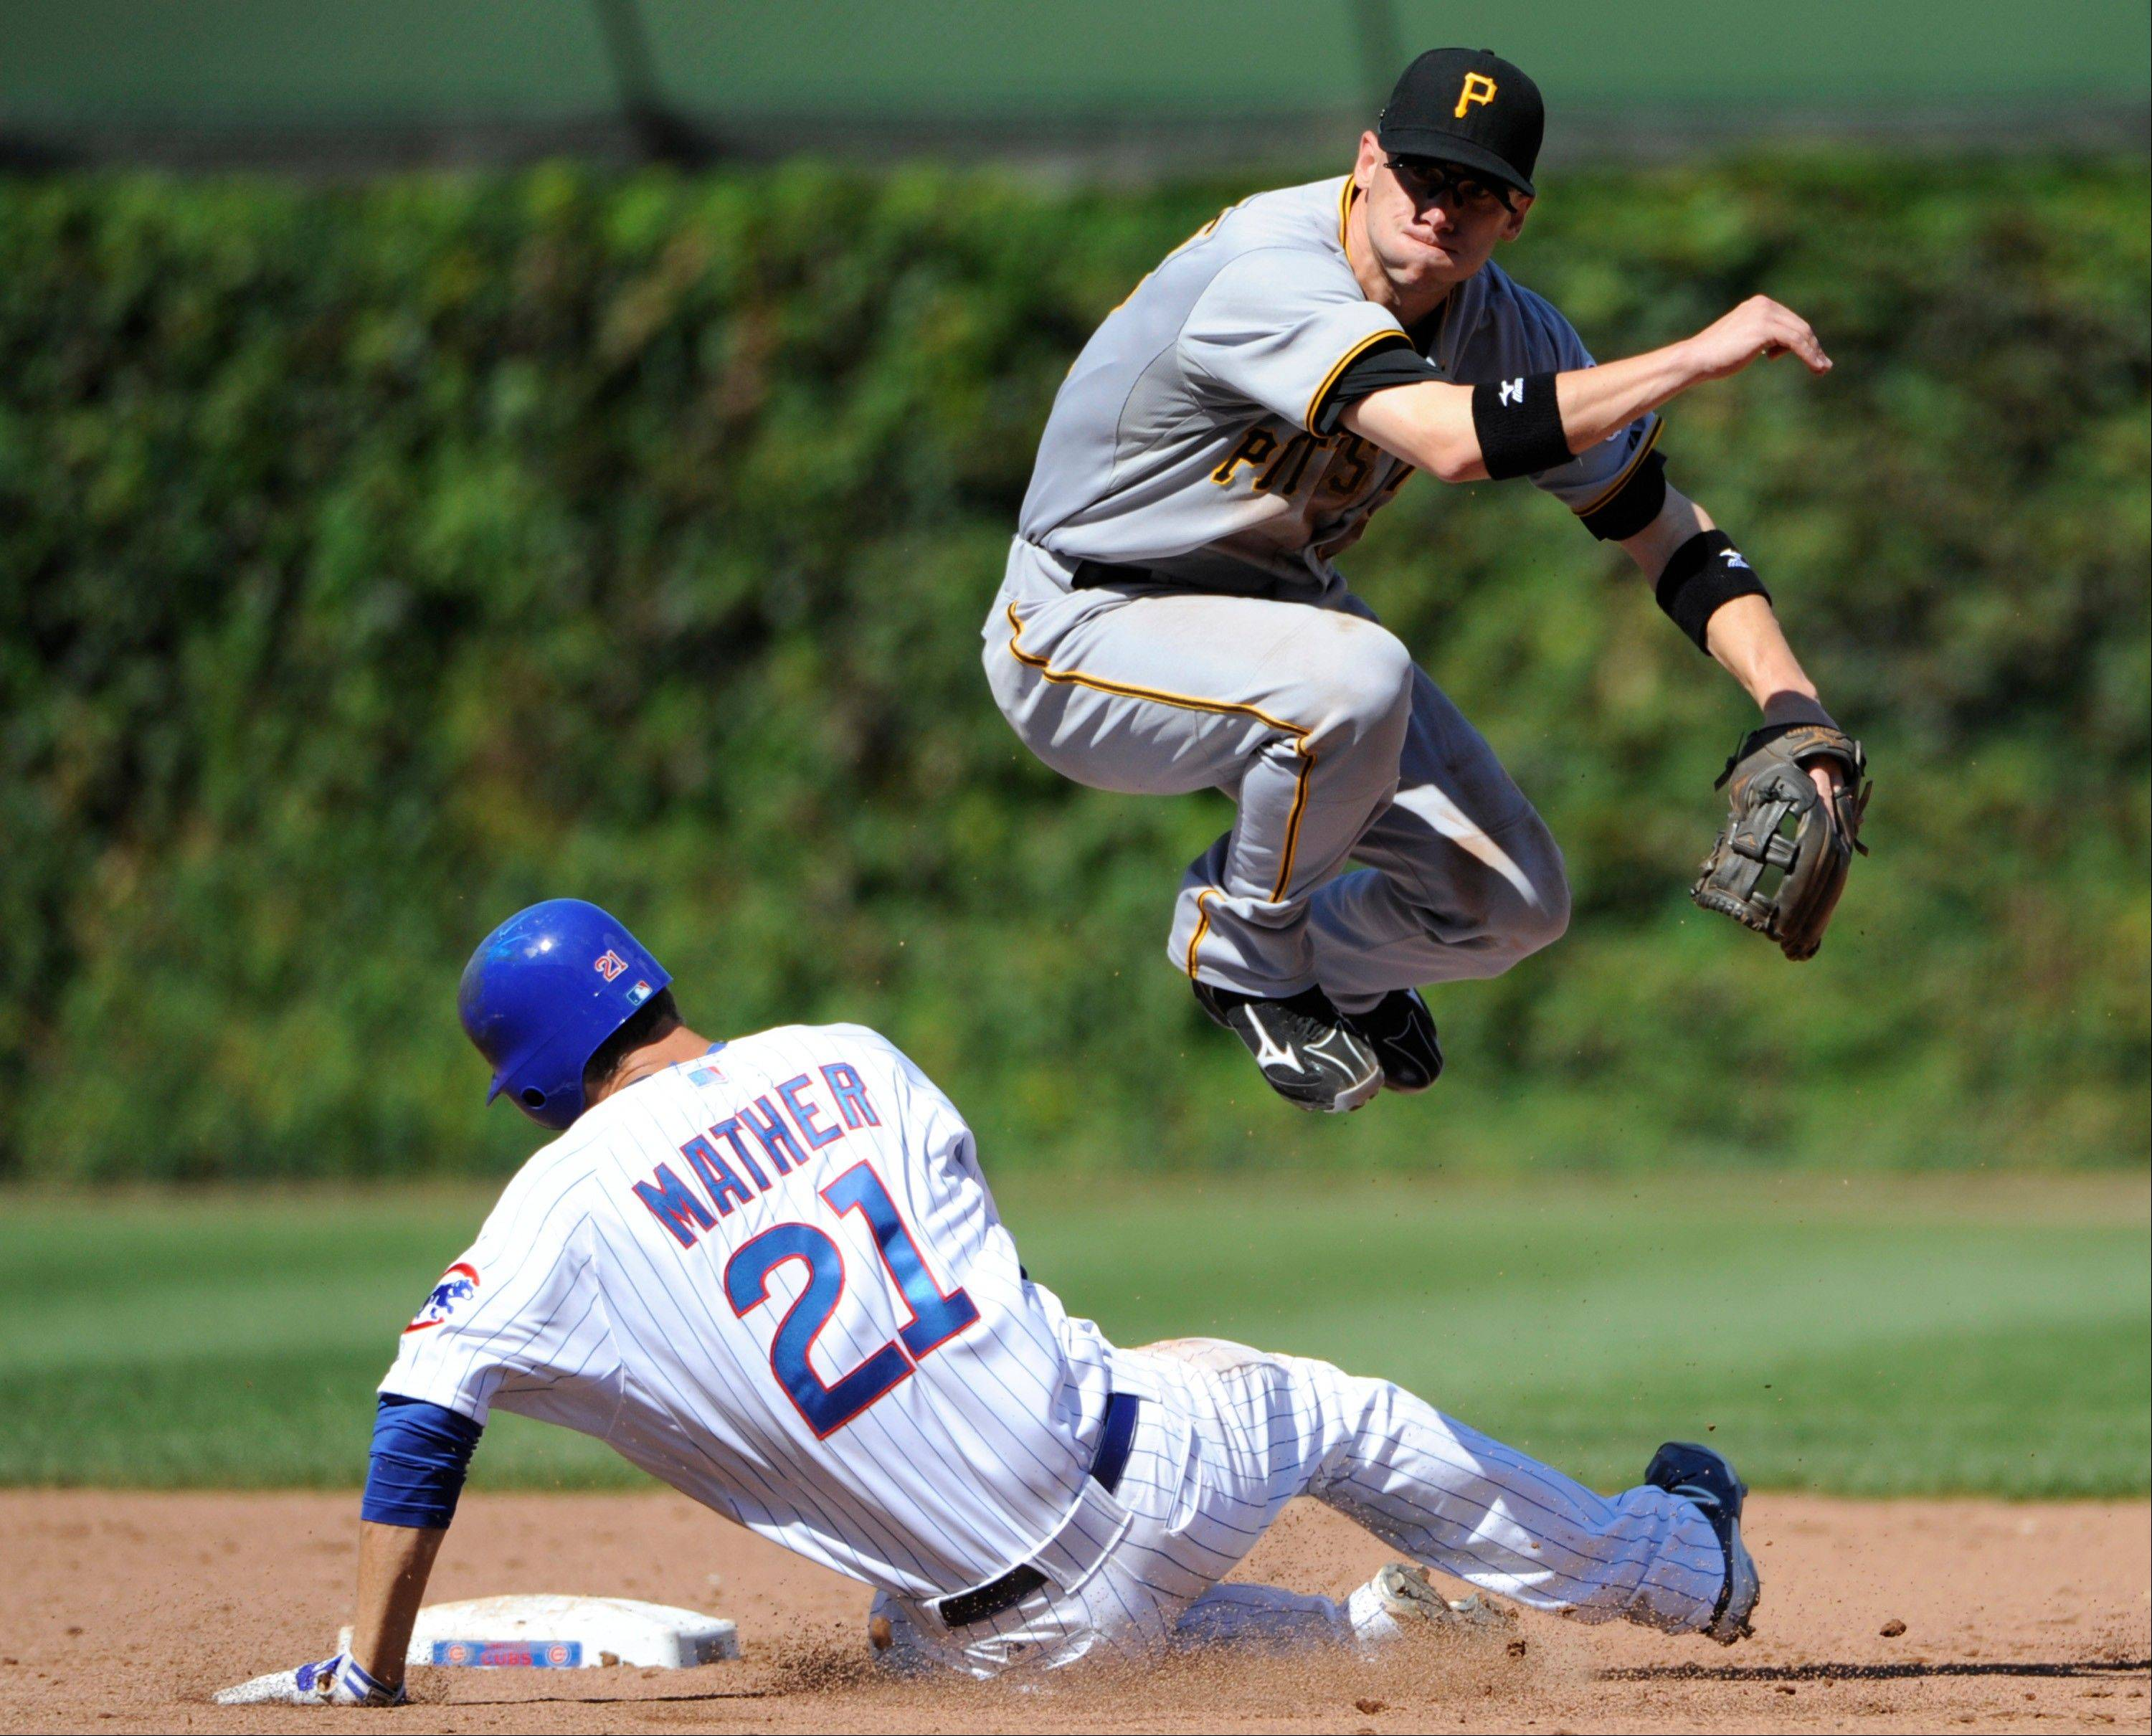 Pittsburgh Pirates shortstop Clint Barmes, top, forces out Chicago Cubs' Joe Mather left, at second base during the fifth inning of a baseball game, Saturday, Sept. 15, 2012 in Chicago. The Cubs' Darwin Barney was safe at first. (AP Photo/David Banks)